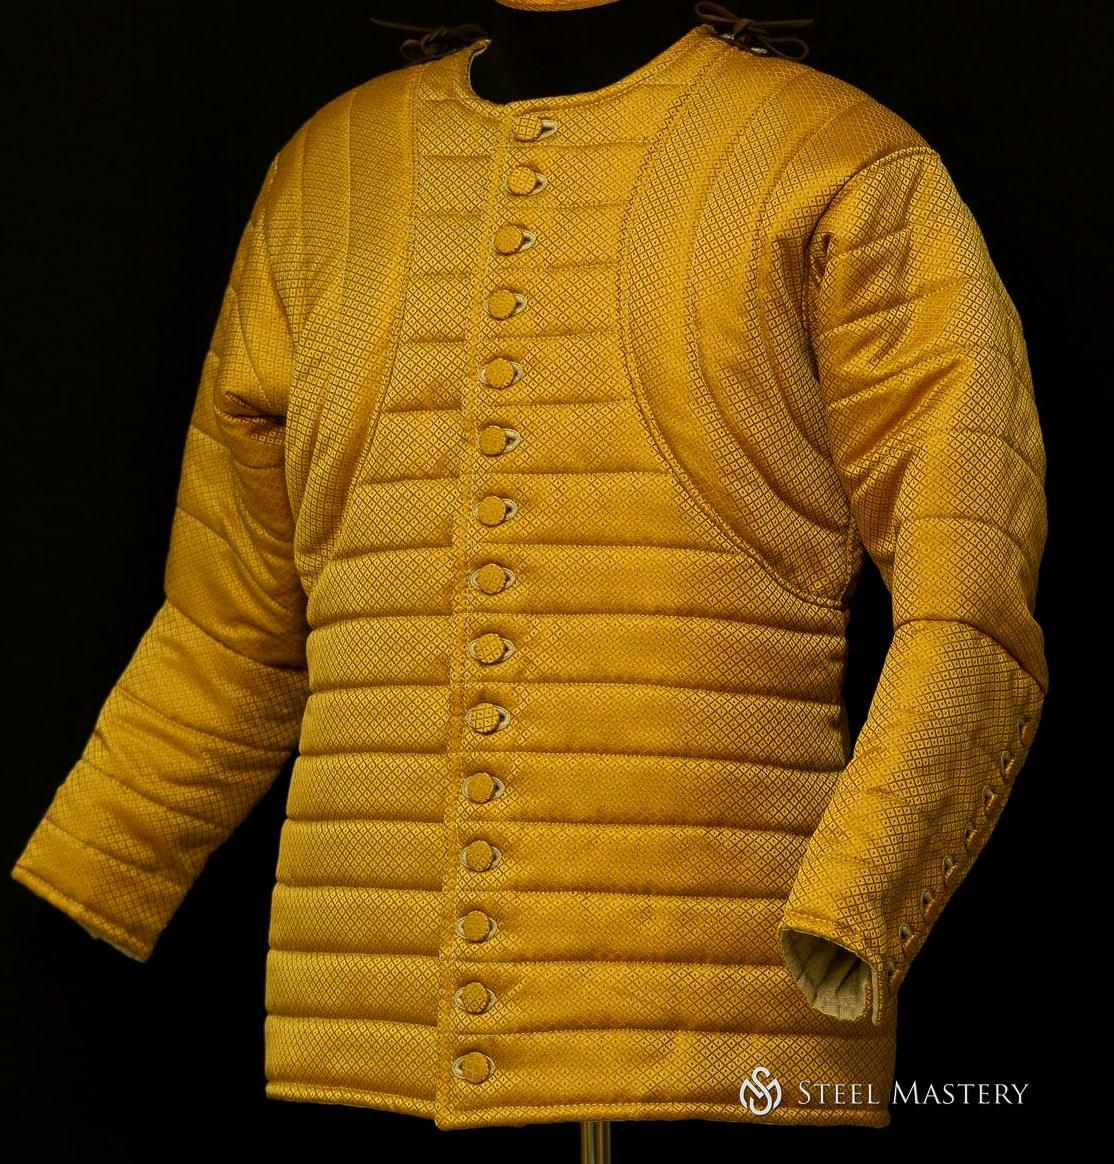 Royal Gambeson Of Patterned Fabric In 2020 Normal Clothes Top Outfits Clothes